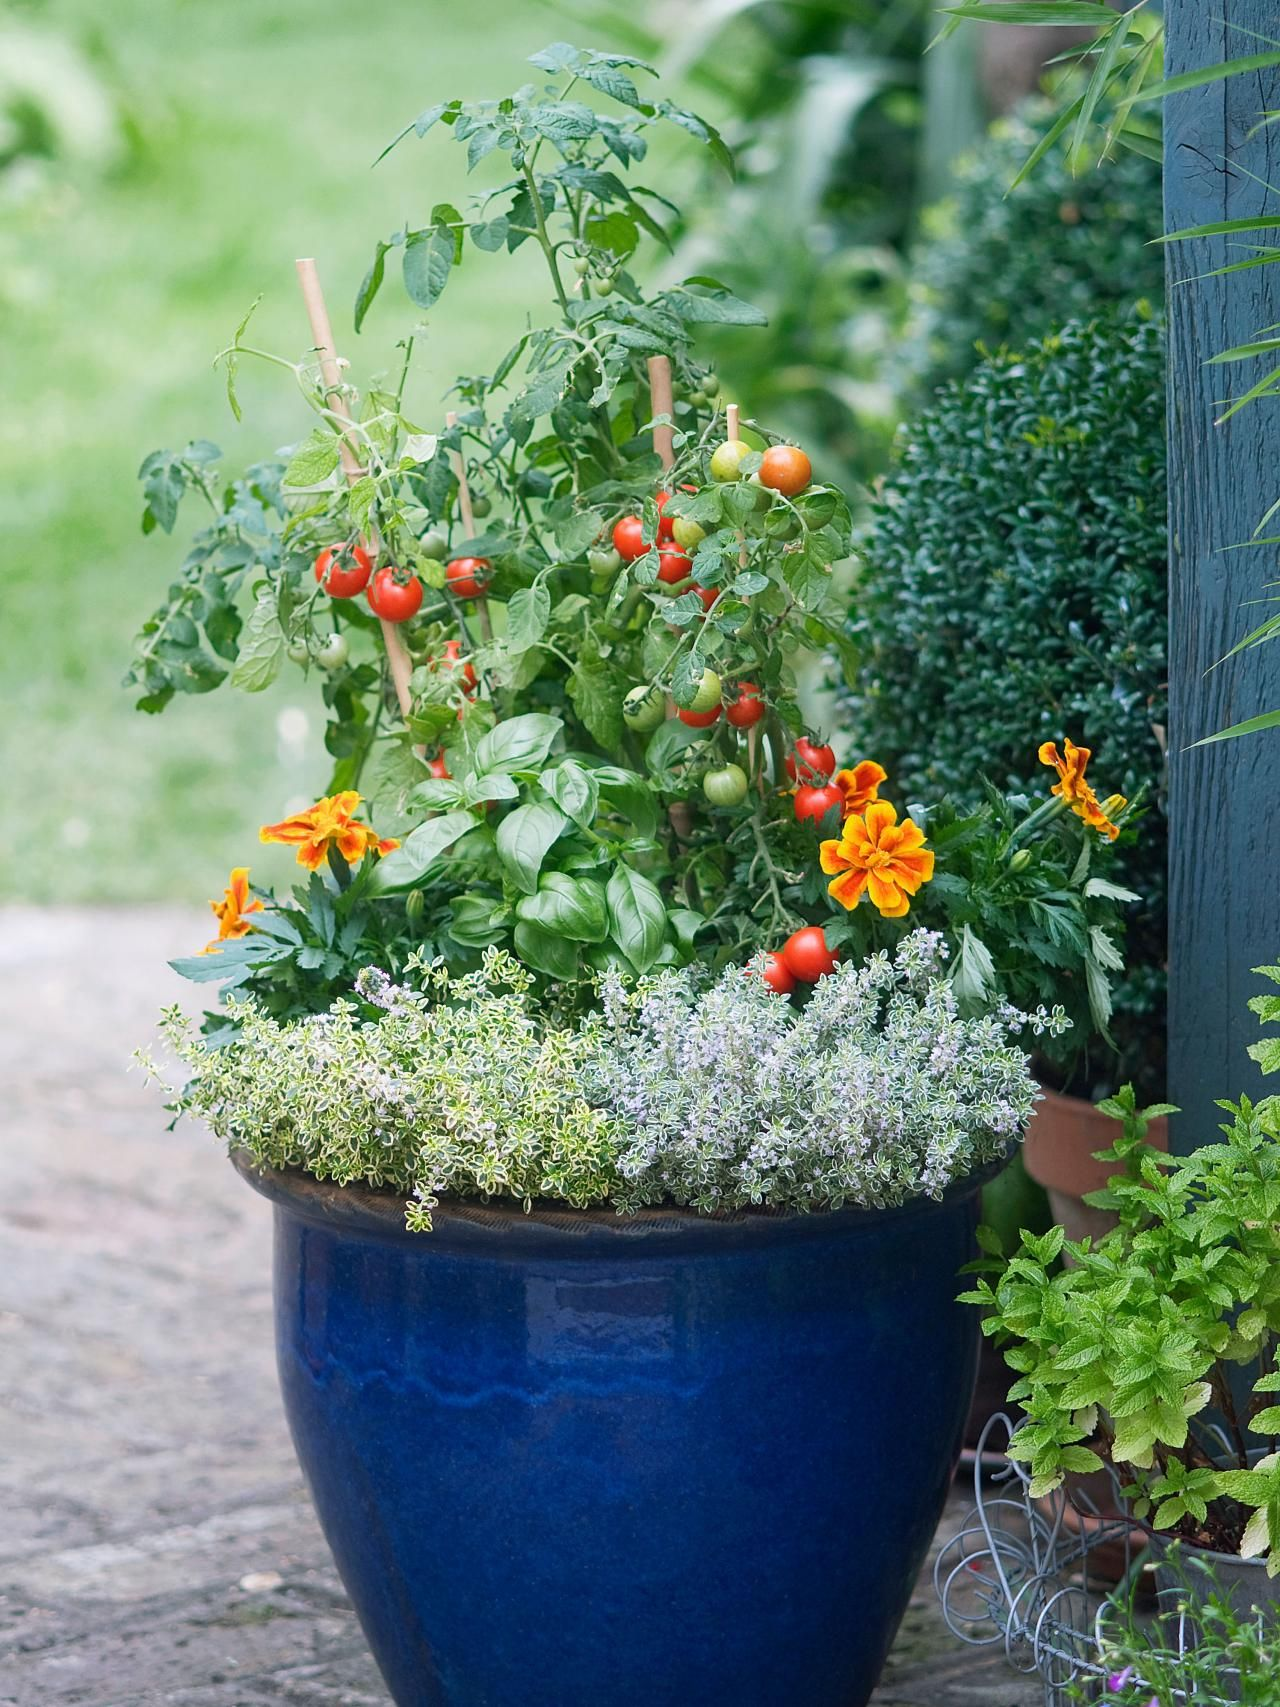 Step by step guide to successful edible container gardening diy garden projects garden - Vegetables for container gardening ...